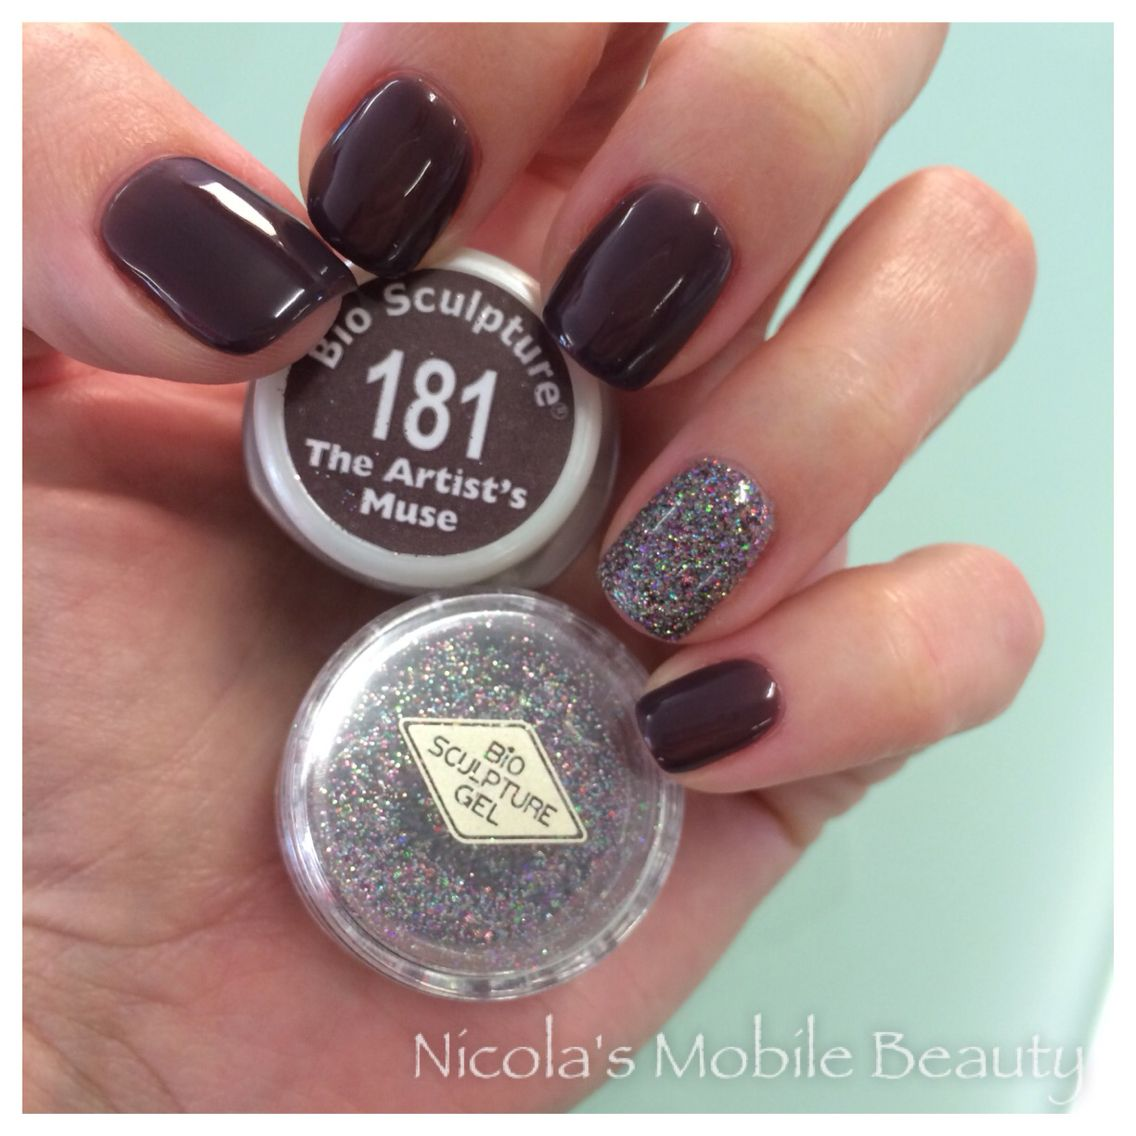 bio sculpture gels 181 the artist 39 s muse with loose. Black Bedroom Furniture Sets. Home Design Ideas